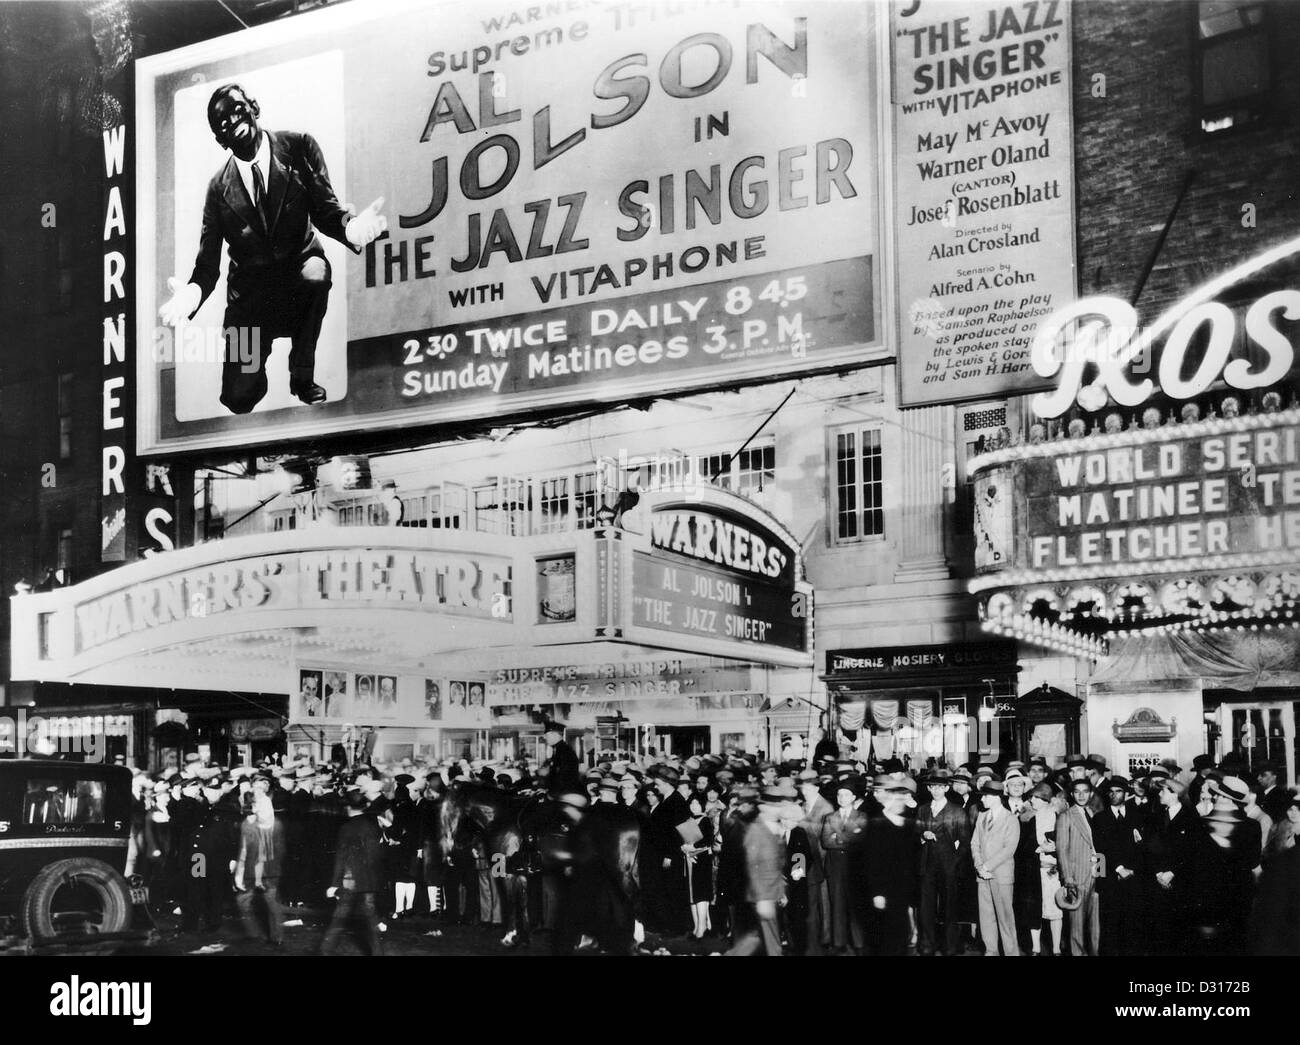 The premiere of The jazz singer - Stock Image